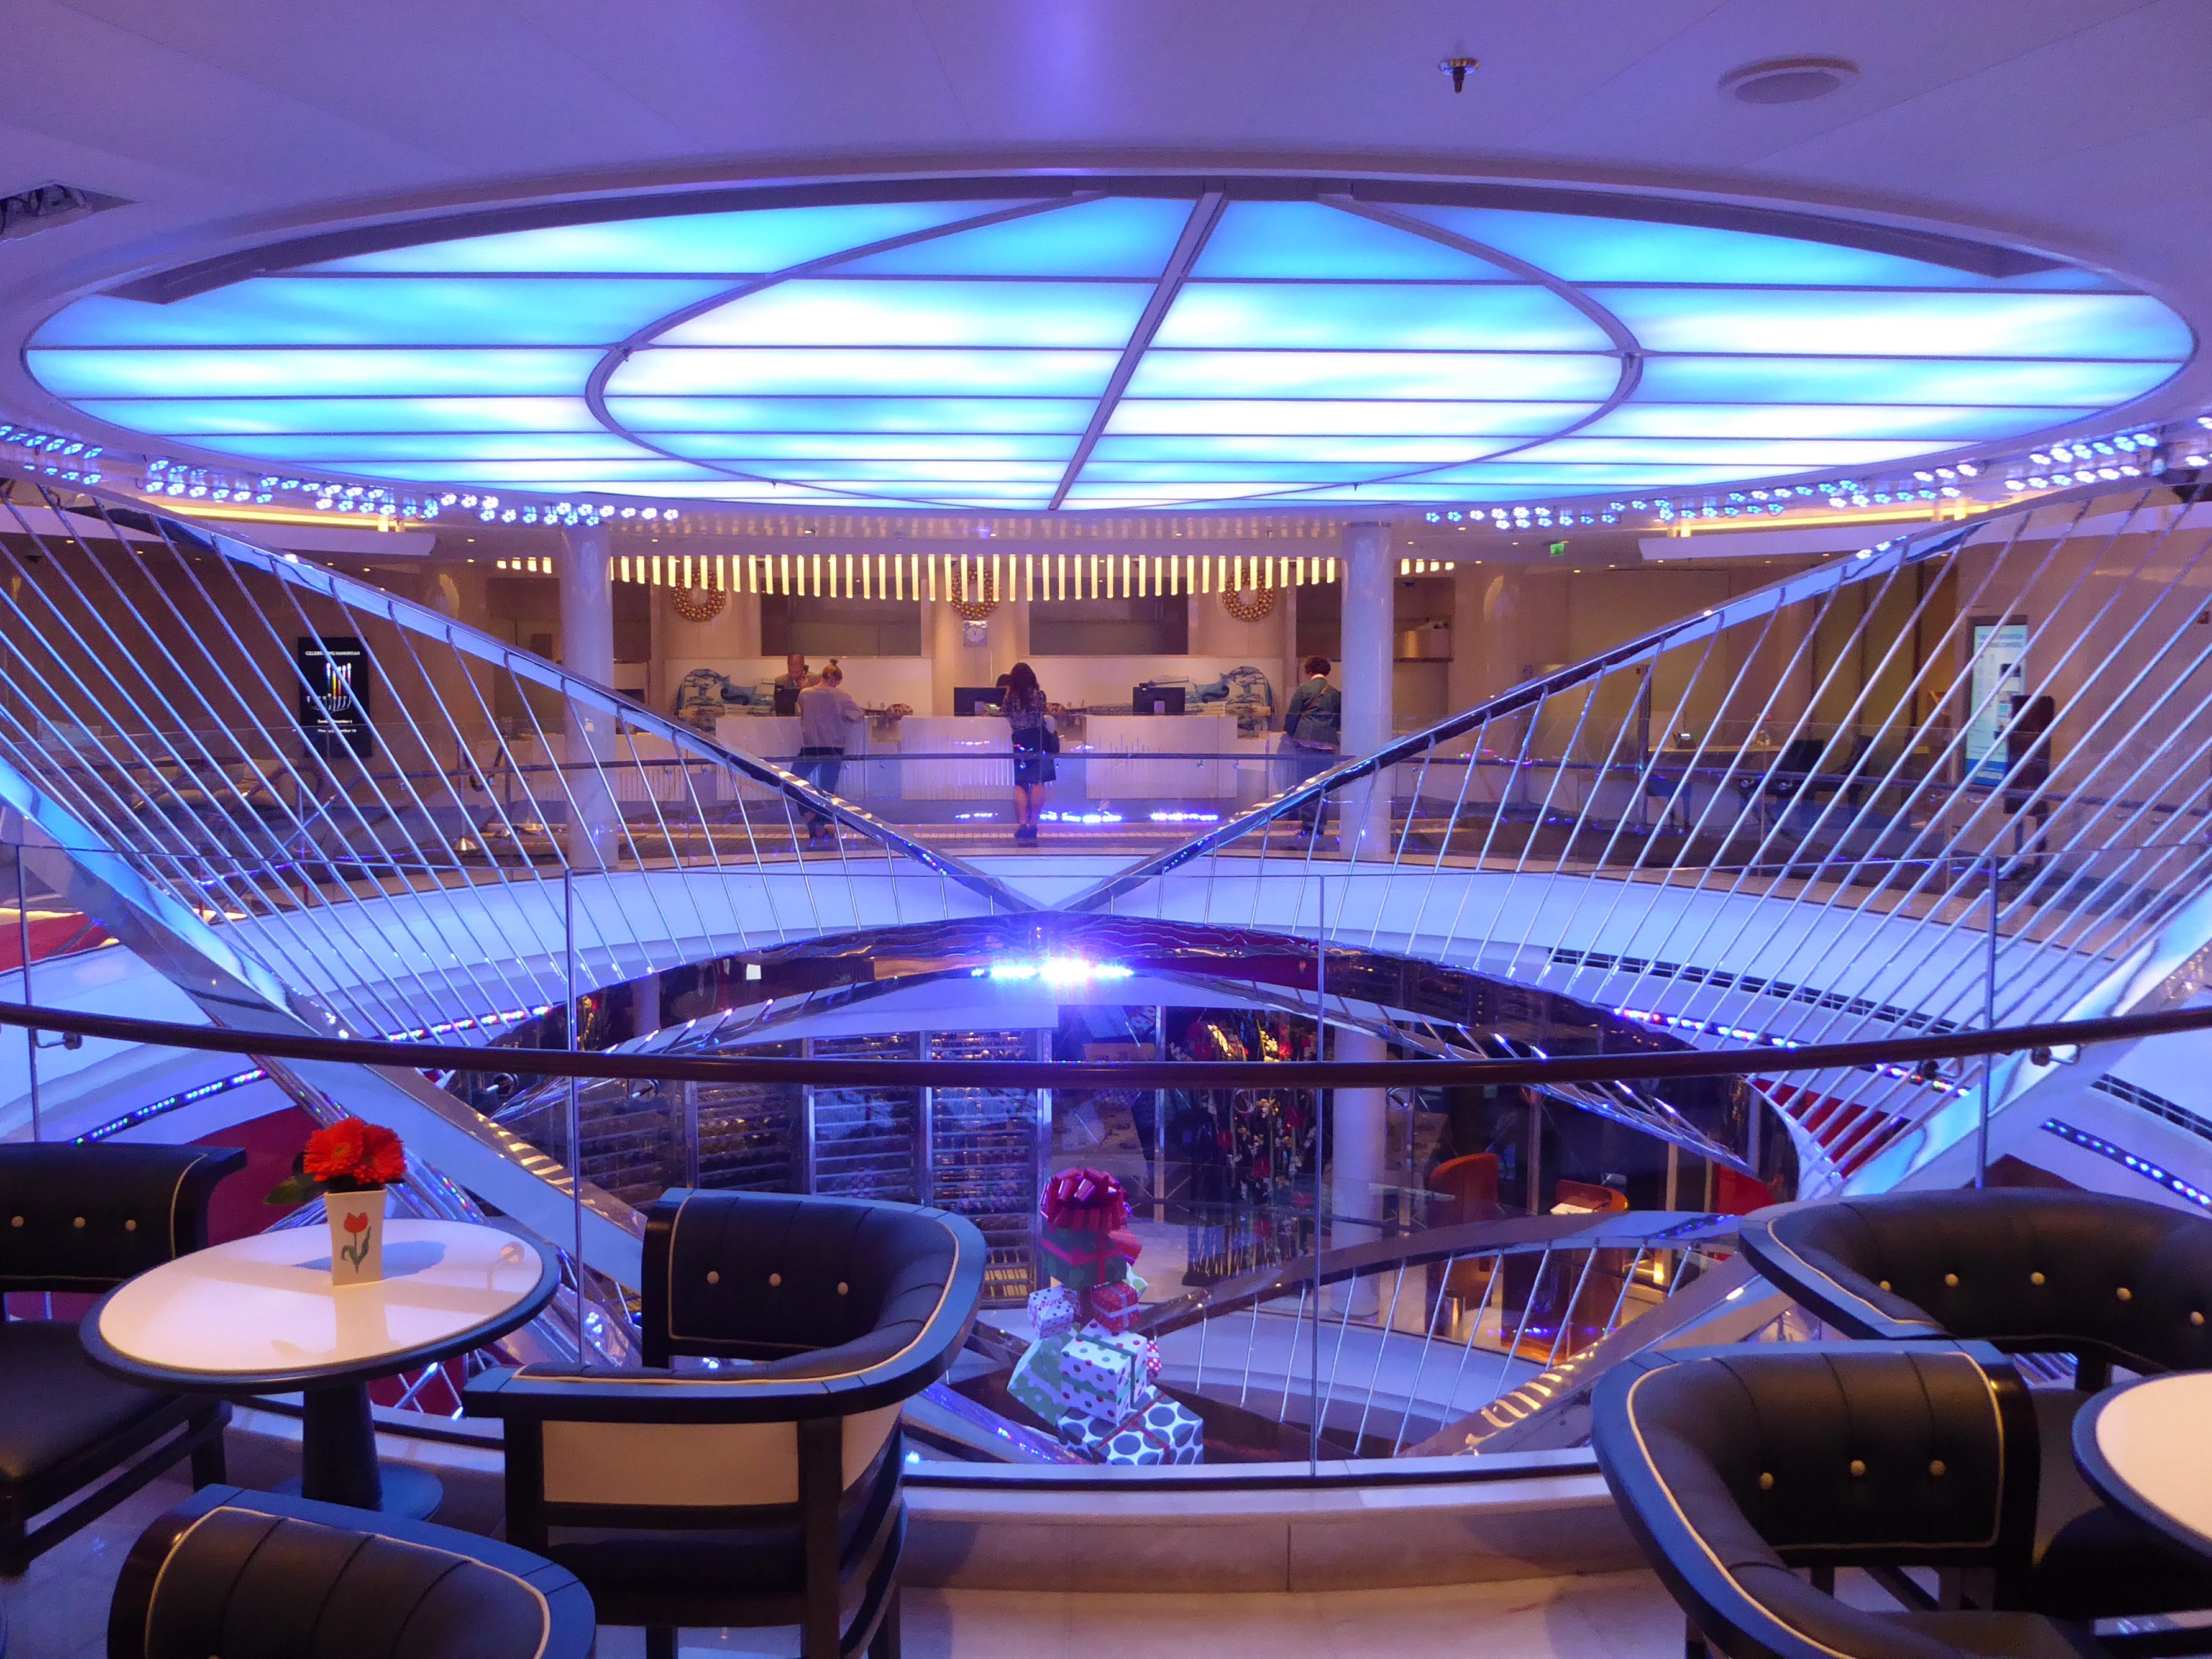 Conforming with the Nieuw Statendam's music-inspired decorative theme, a large metal sculpture representing the inner workings of a harp dominates the Atrium, a circular lobby that spans the midships portion of Decks 3, 2 and 1.